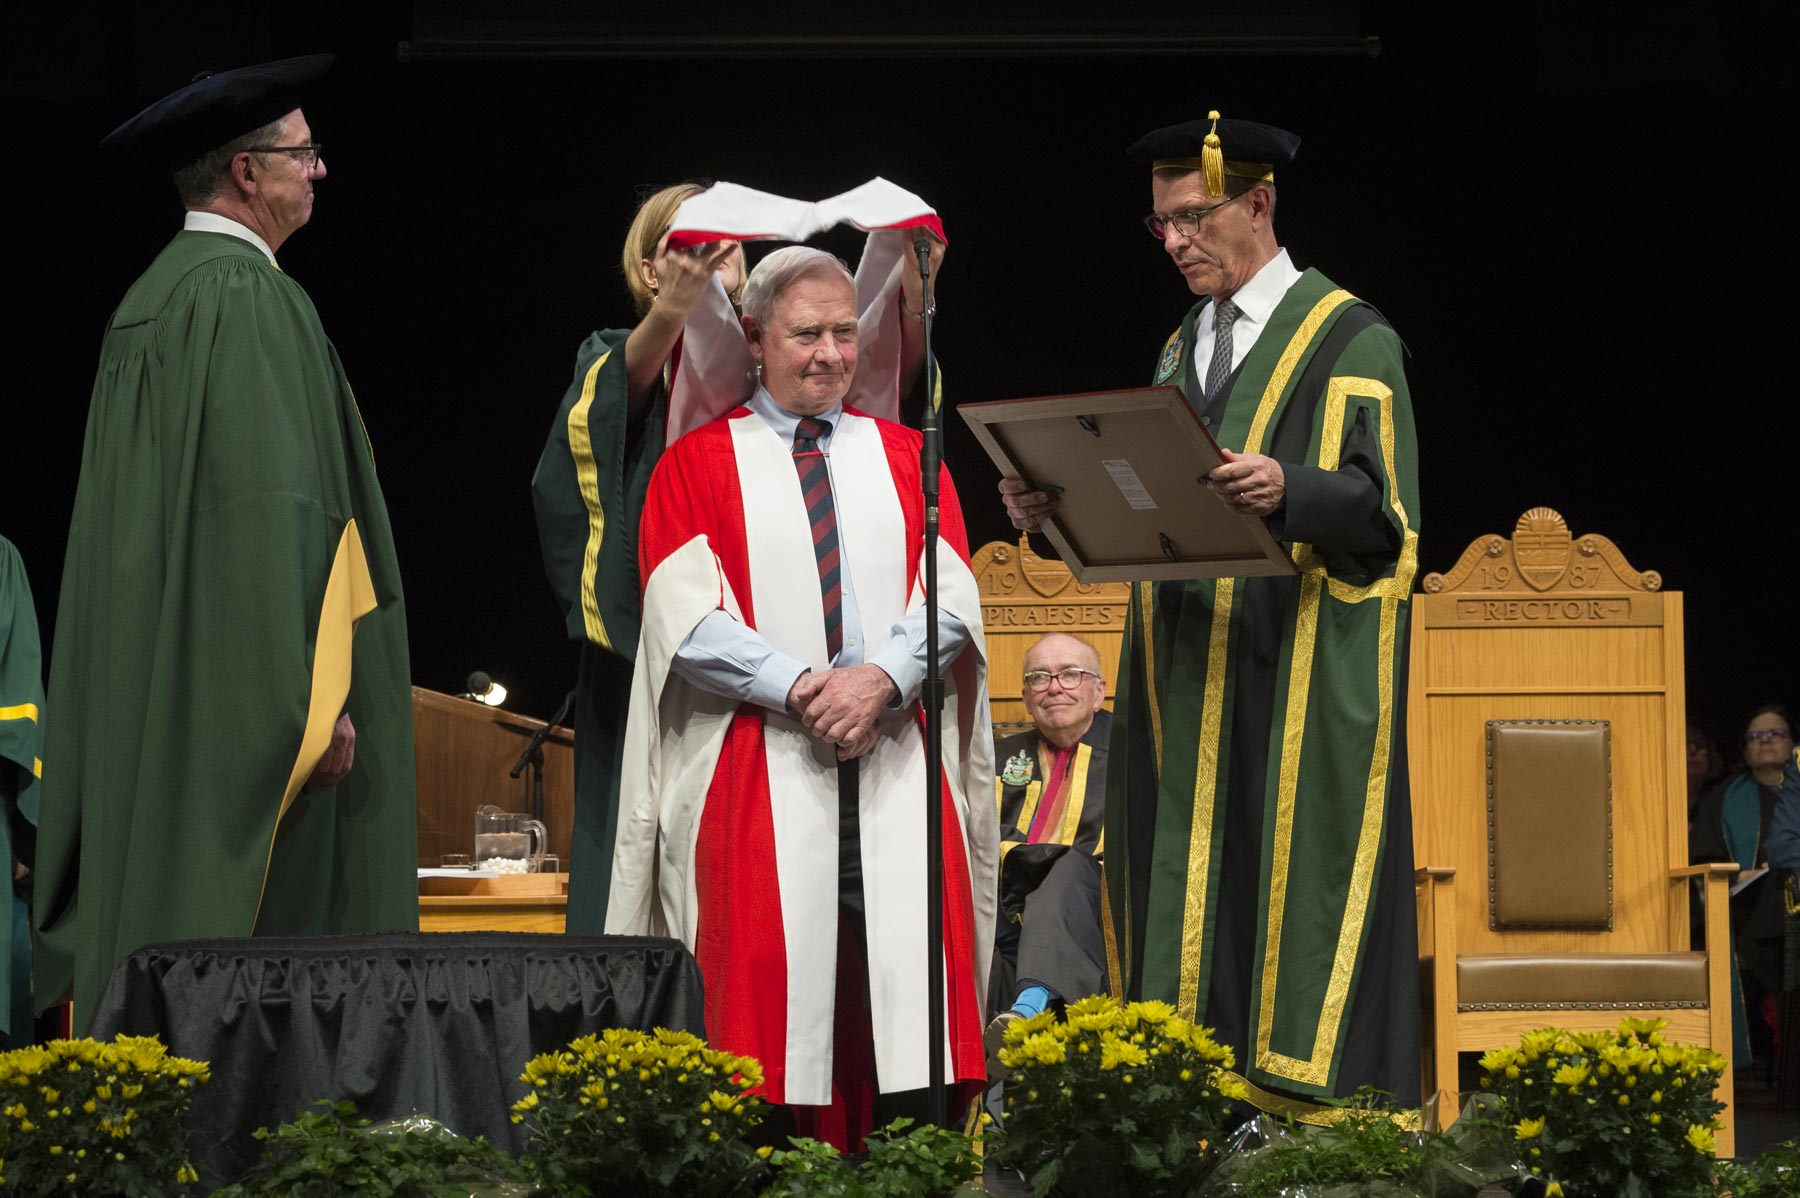 Later in the afternoon, His Excellency was conferred an honorary degree in Law from the University of Alberta during a convocation ceremony.